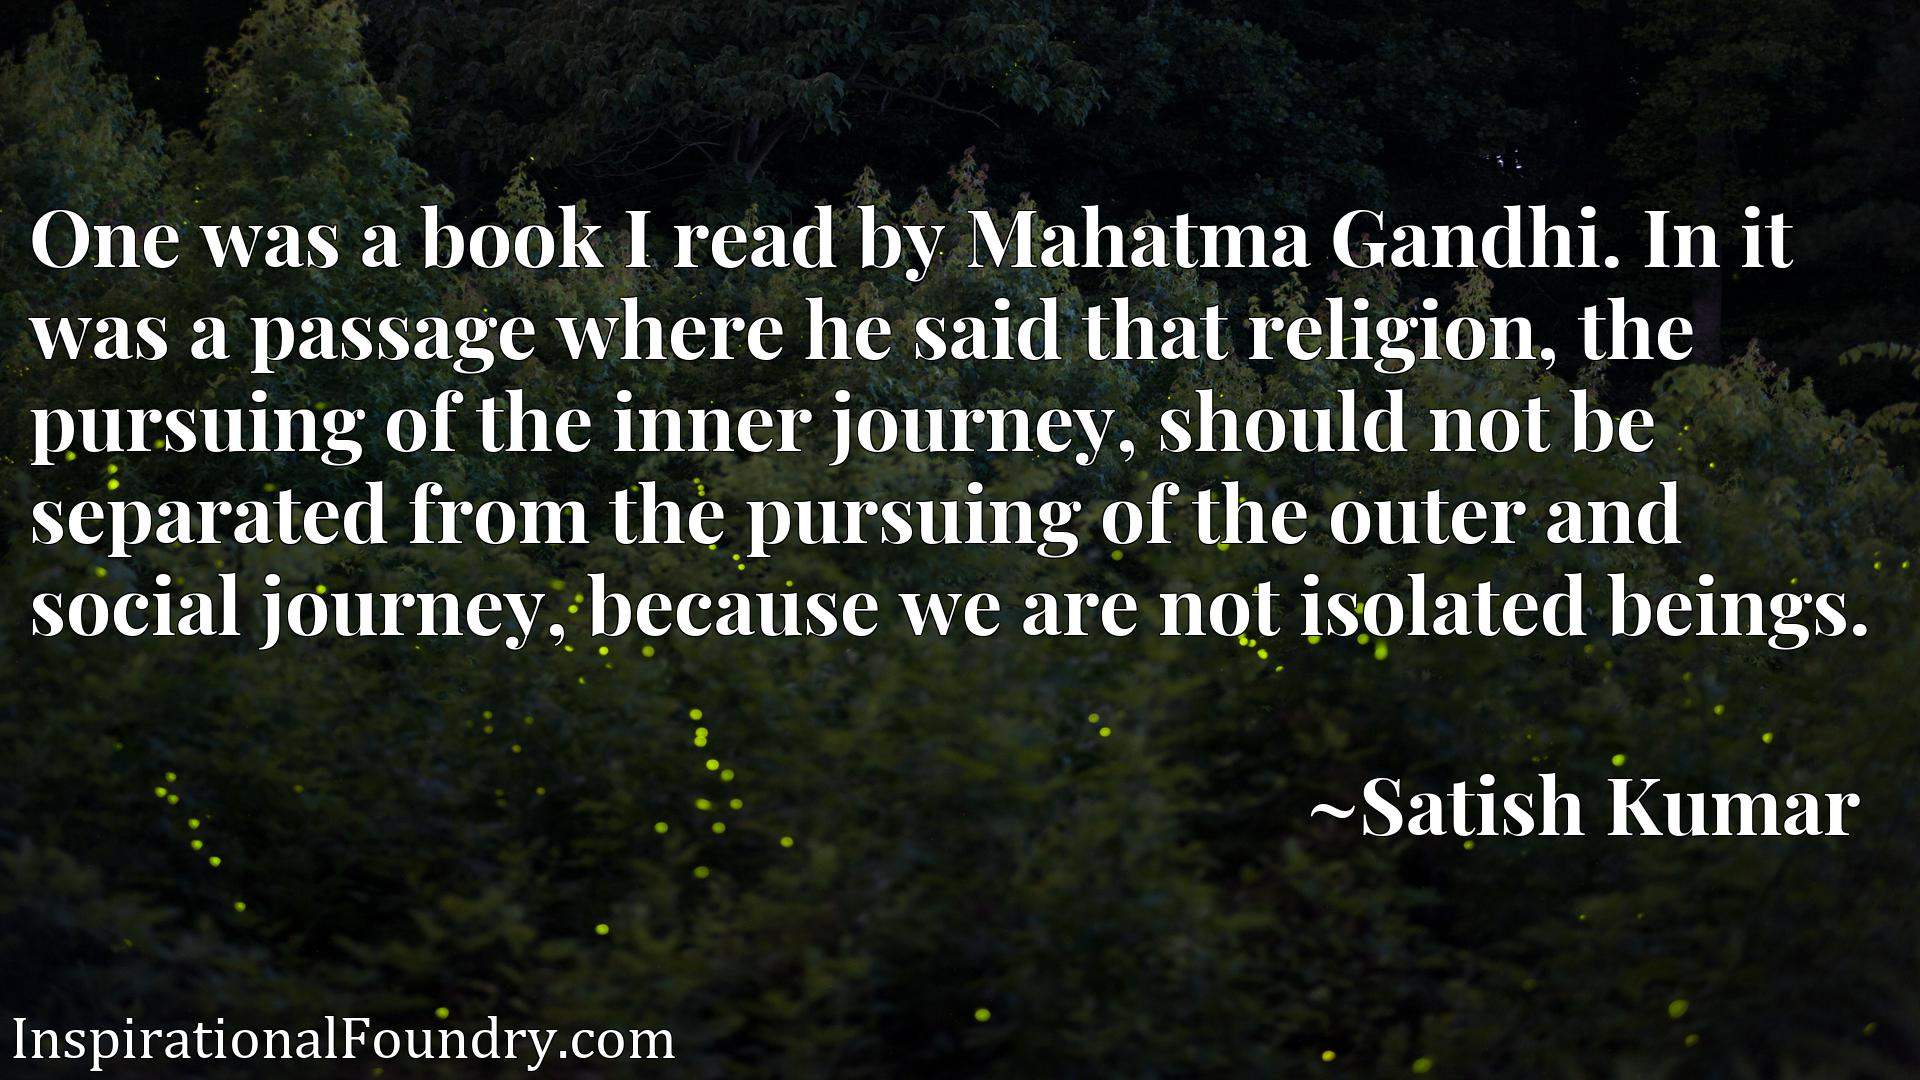 One was a book I read by Mahatma Gandhi. In it was a passage where he said that religion, the pursuing of the inner journey, should not be separated from the pursuing of the outer and social journey, because we are not isolated beings.